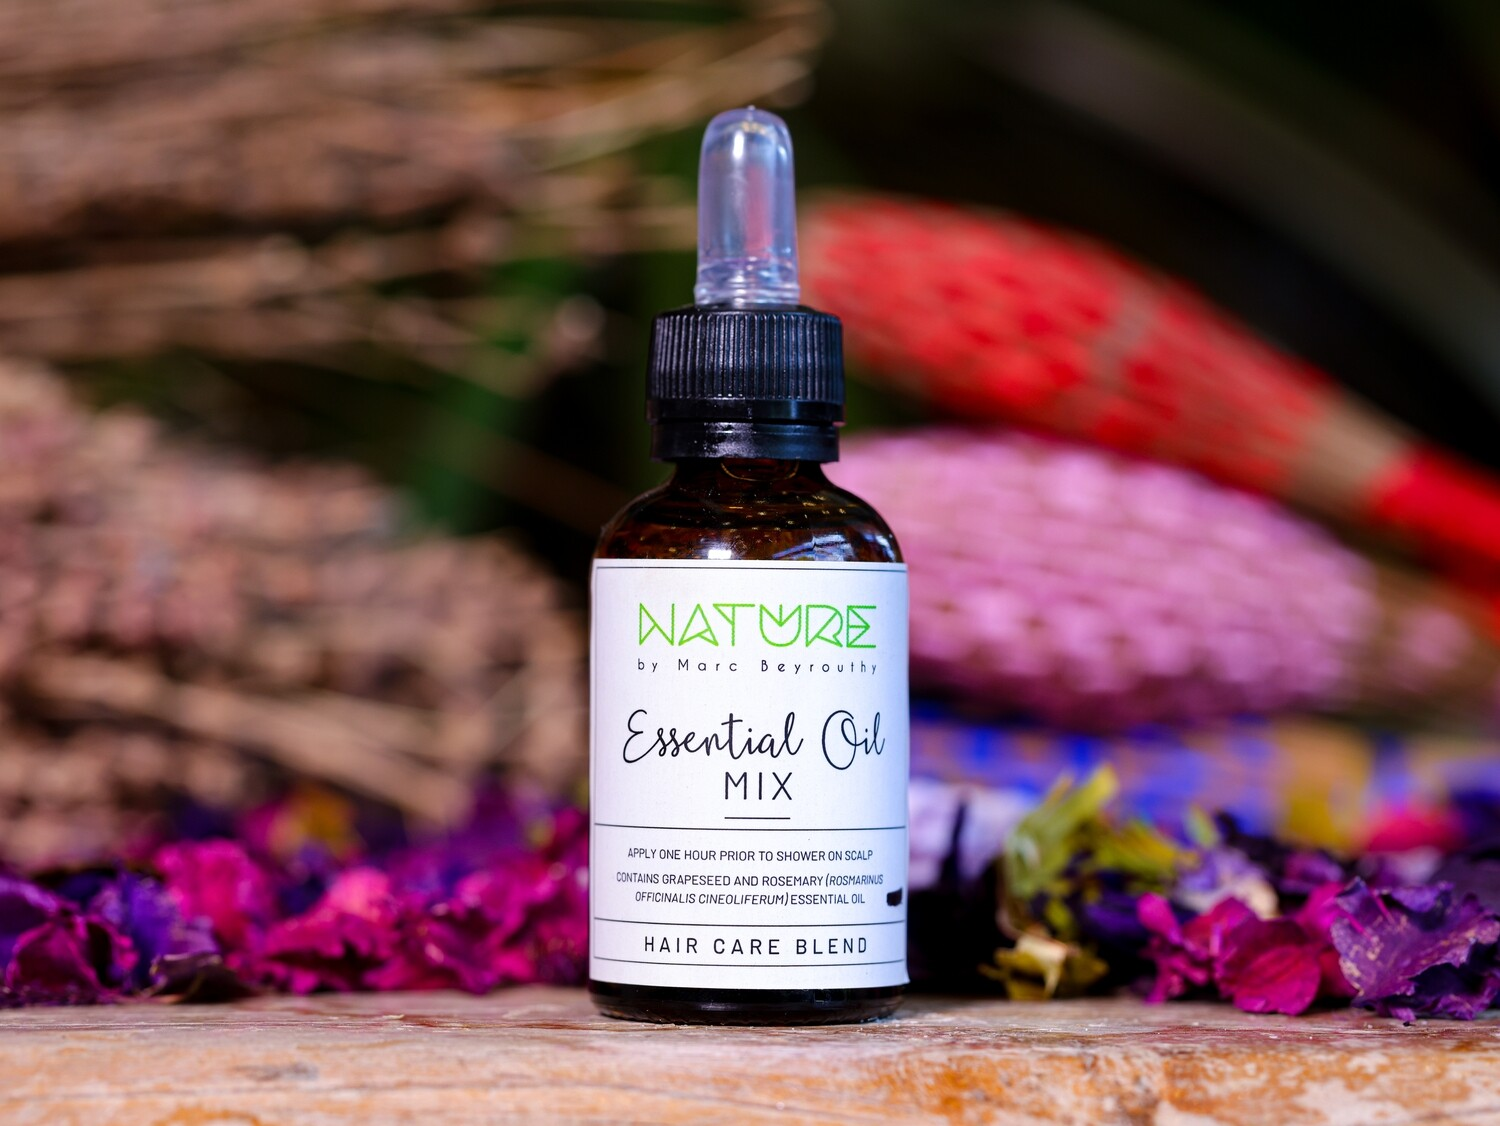 Essential Oil Hair Care (Bottle) - Nature by Marc Beyrouthy